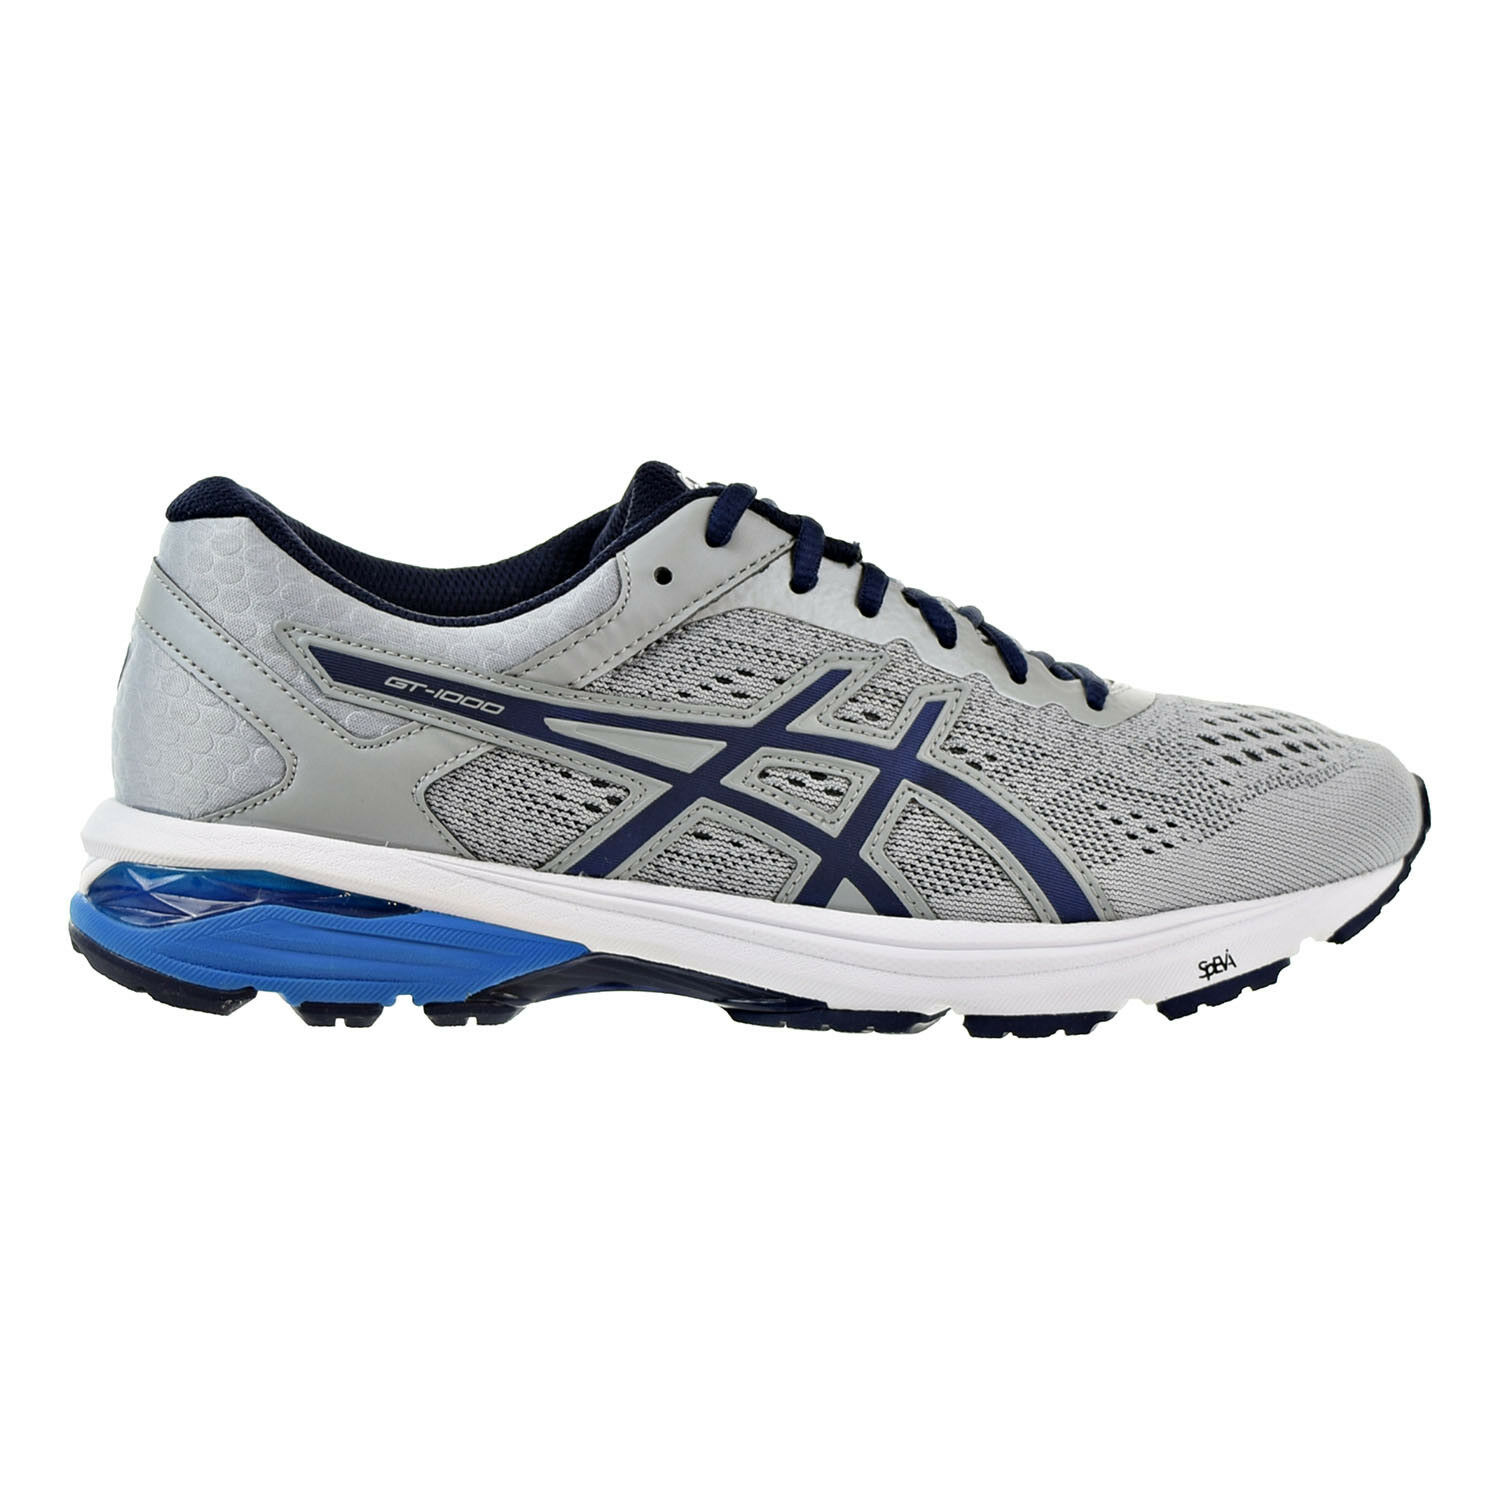 Asics GT-1000 6 Men's Blue Shoes Mid Grey/Peacoat/Directoire Blue Men's t7a4n-9658 934b69